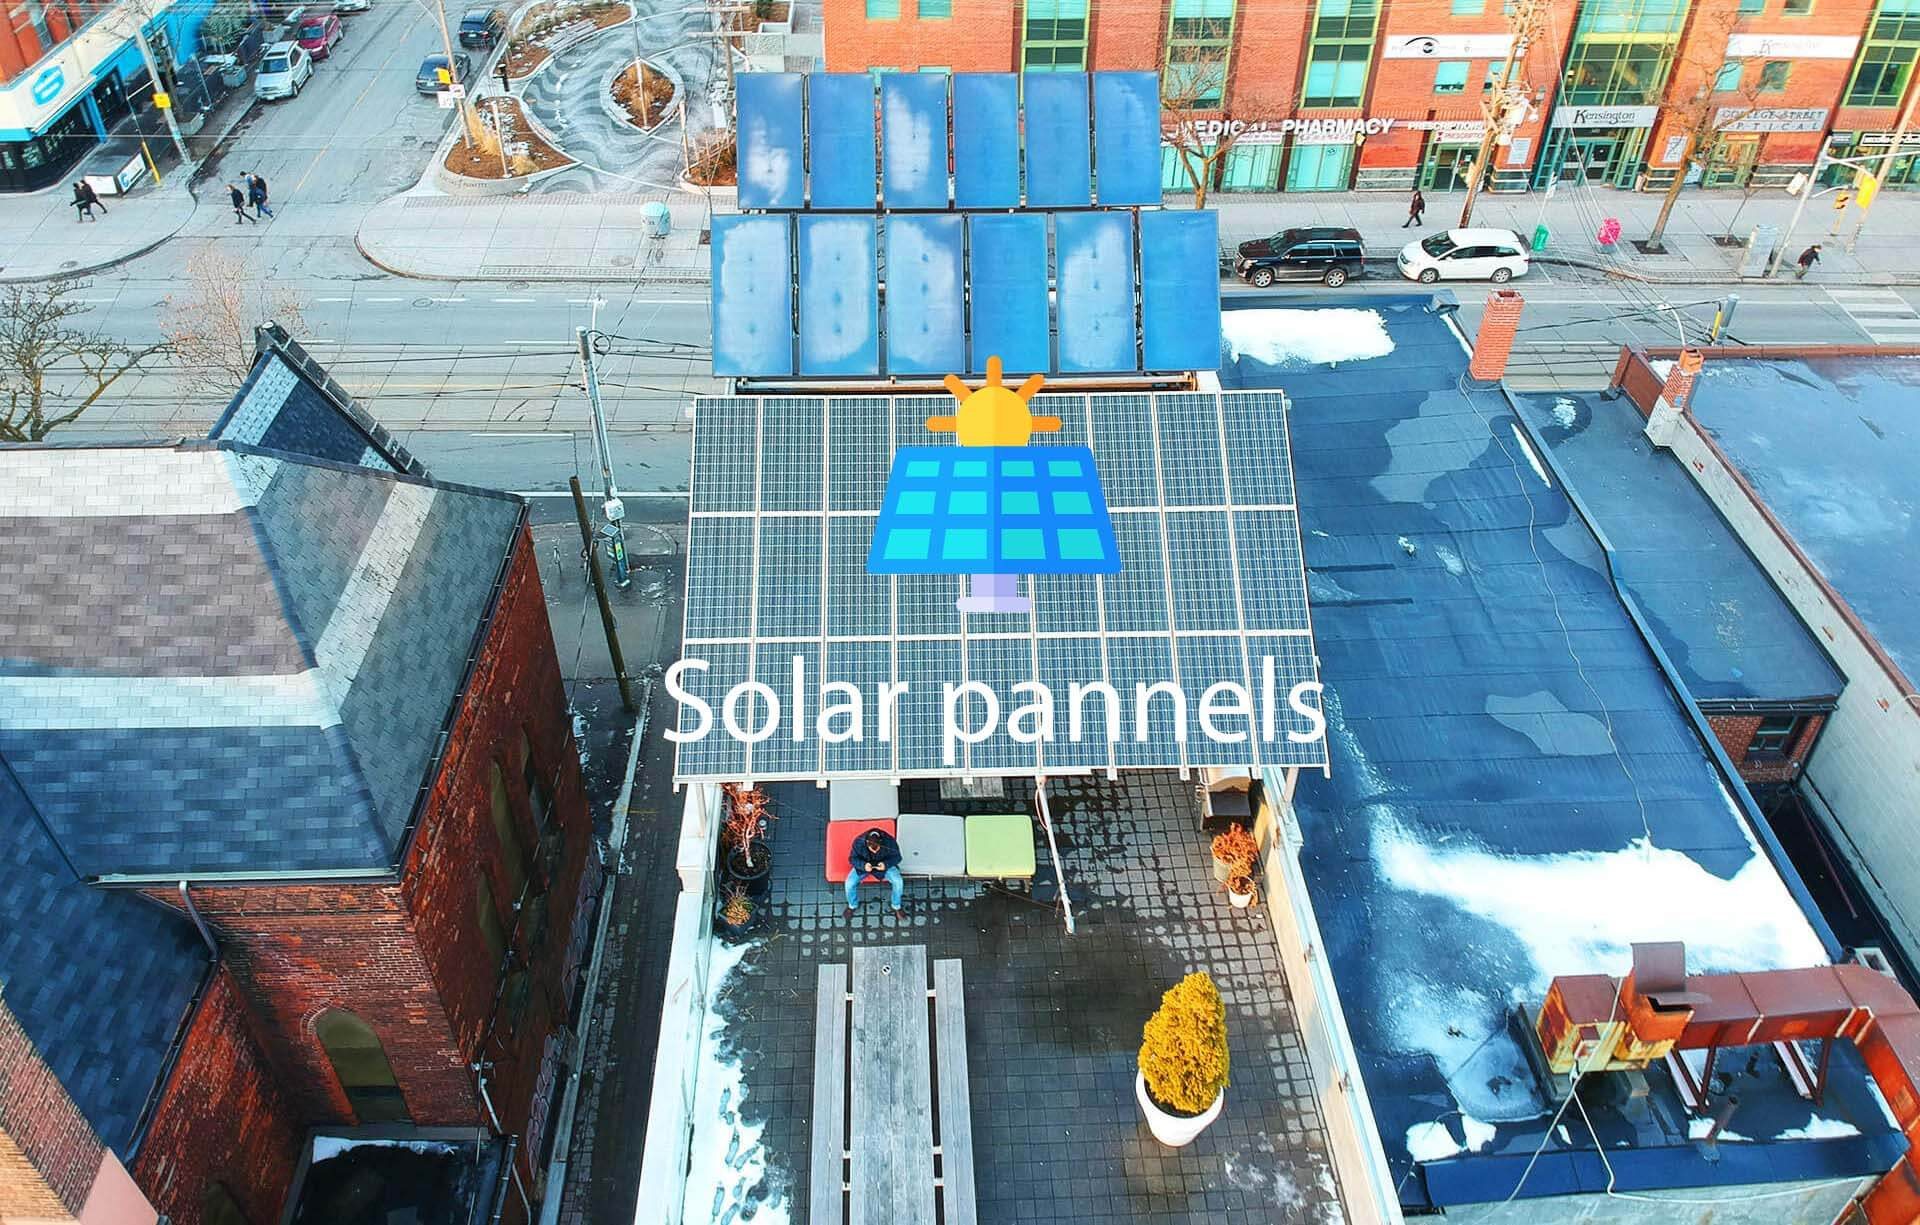 Solar Pannels in a rooftop